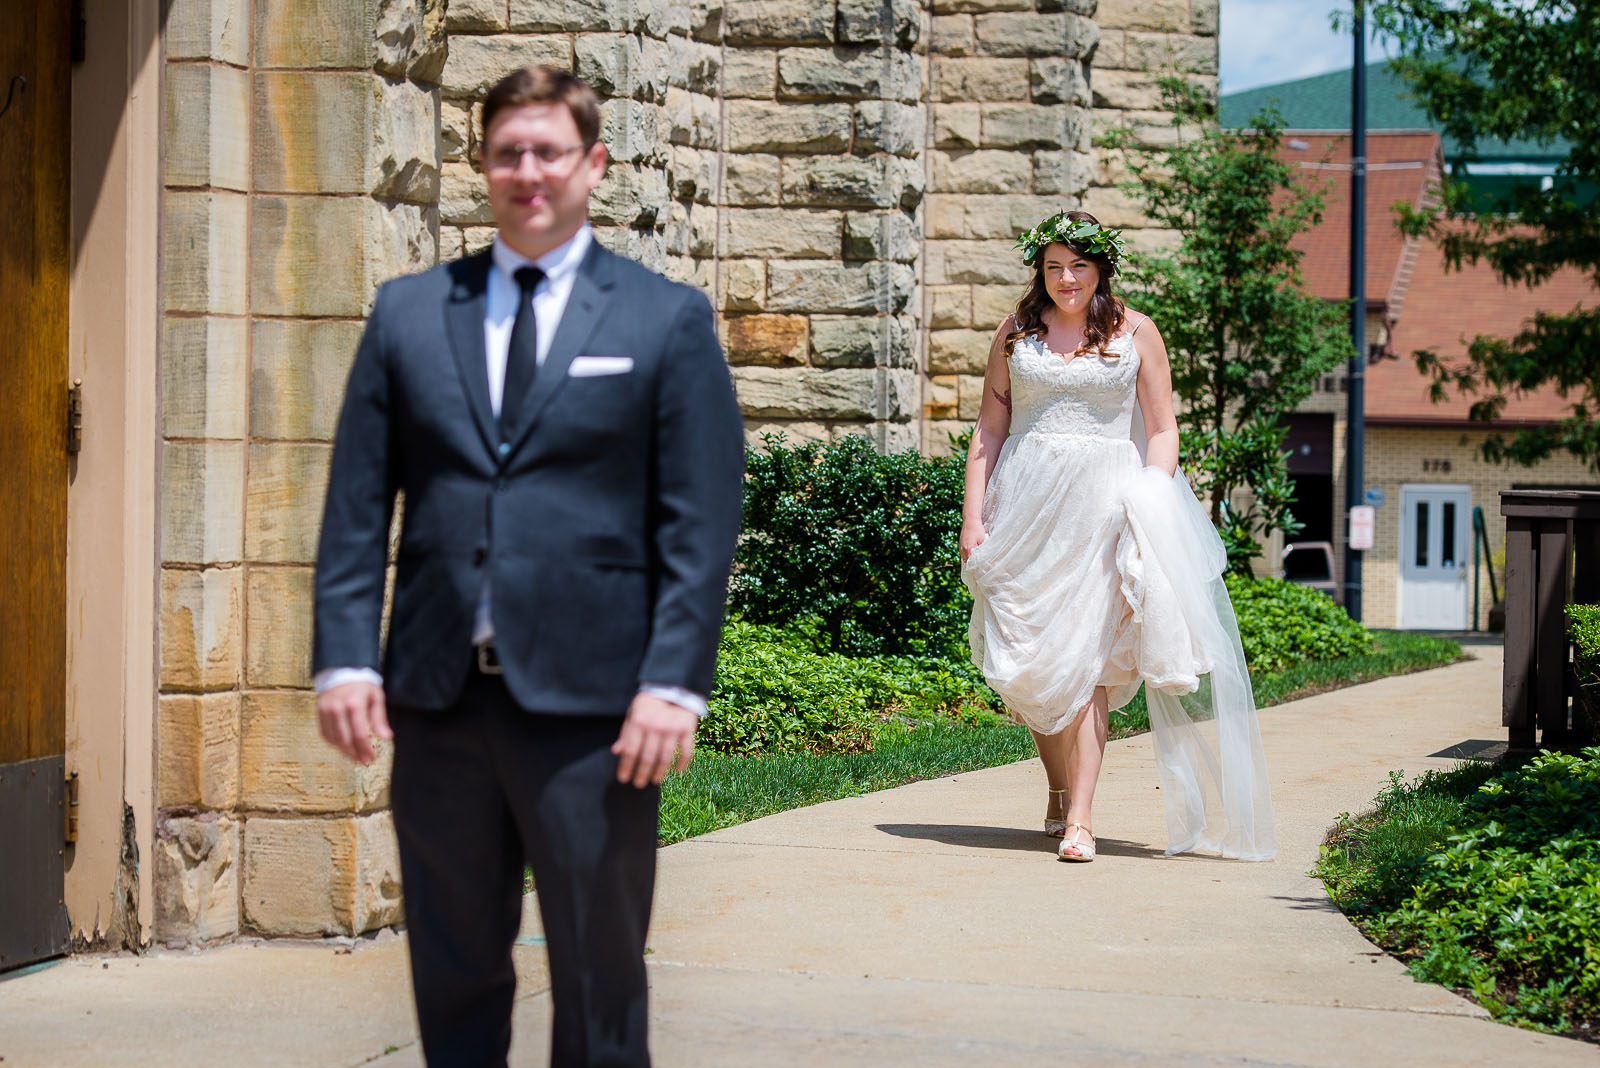 Eric_and_Christy_Photography_Blog_Wedding_Keara&Andy-3